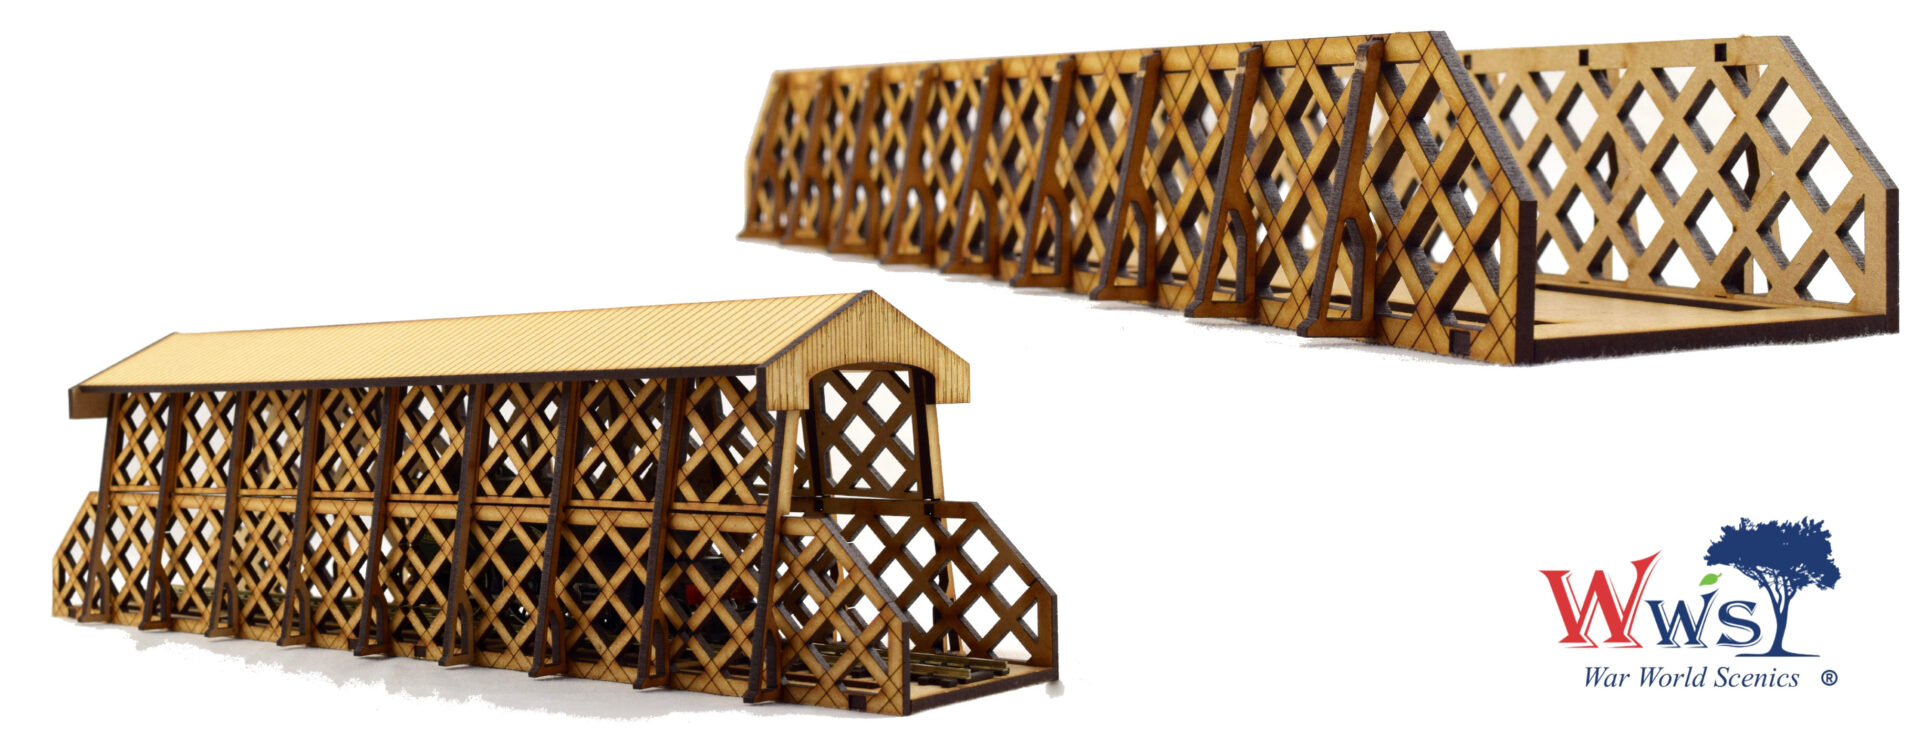 Tempvar Lattice Bridges